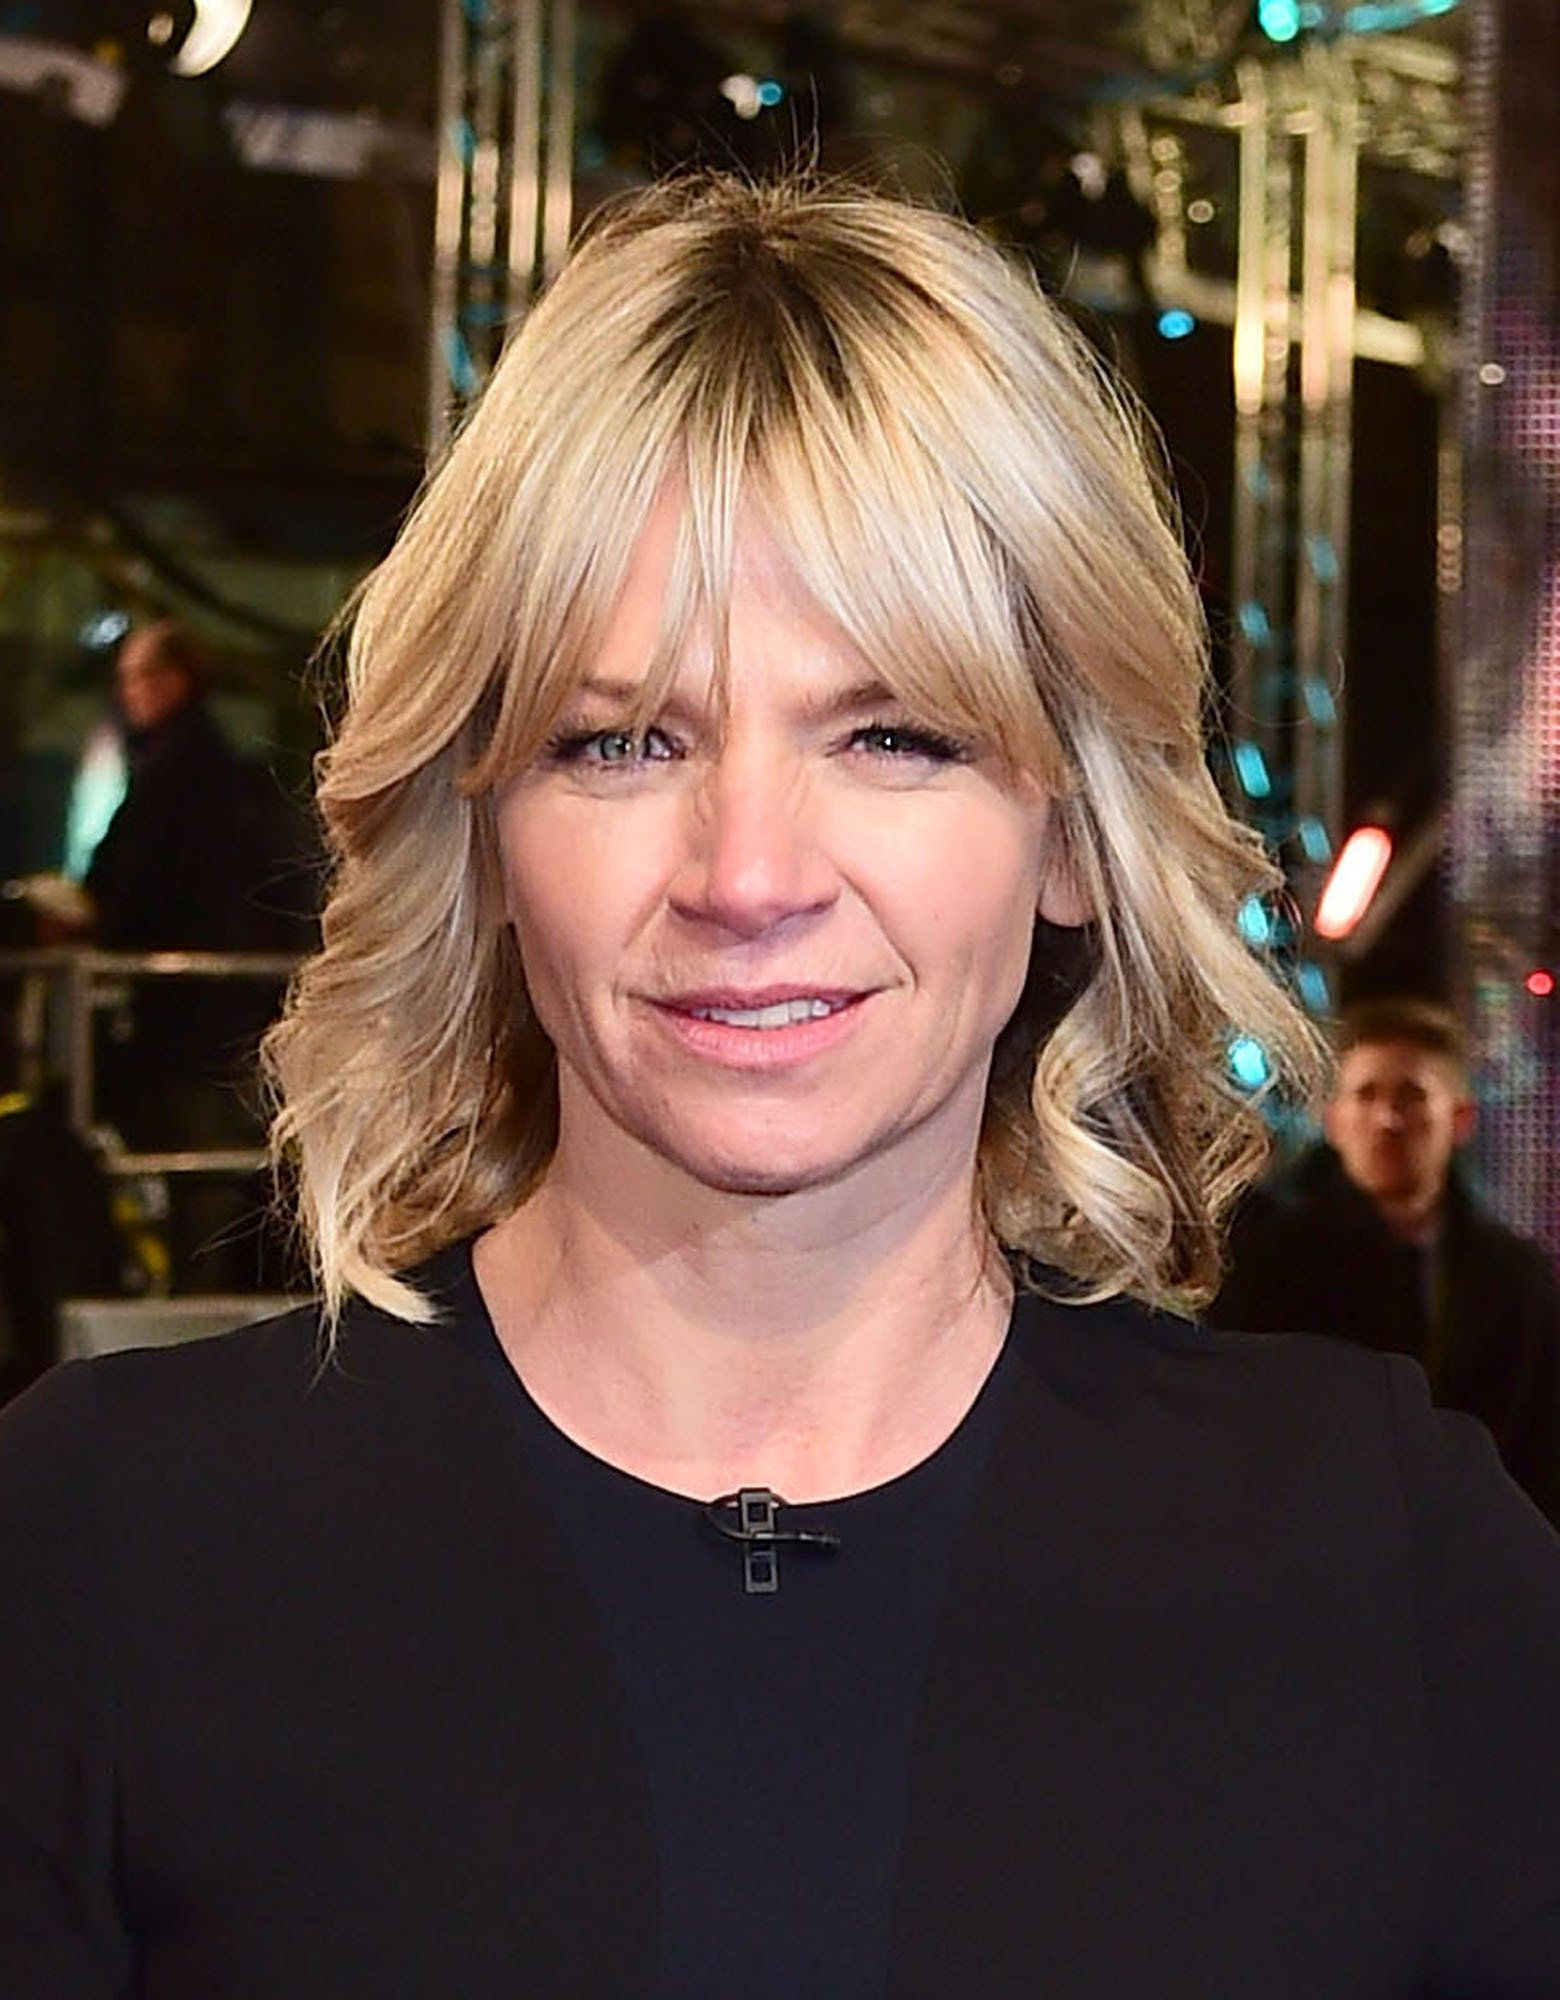 Zoe Ball 'Getting Stronger' Since Boyfriend's Suicide, After Accepting She 'Couldn't Save Him'